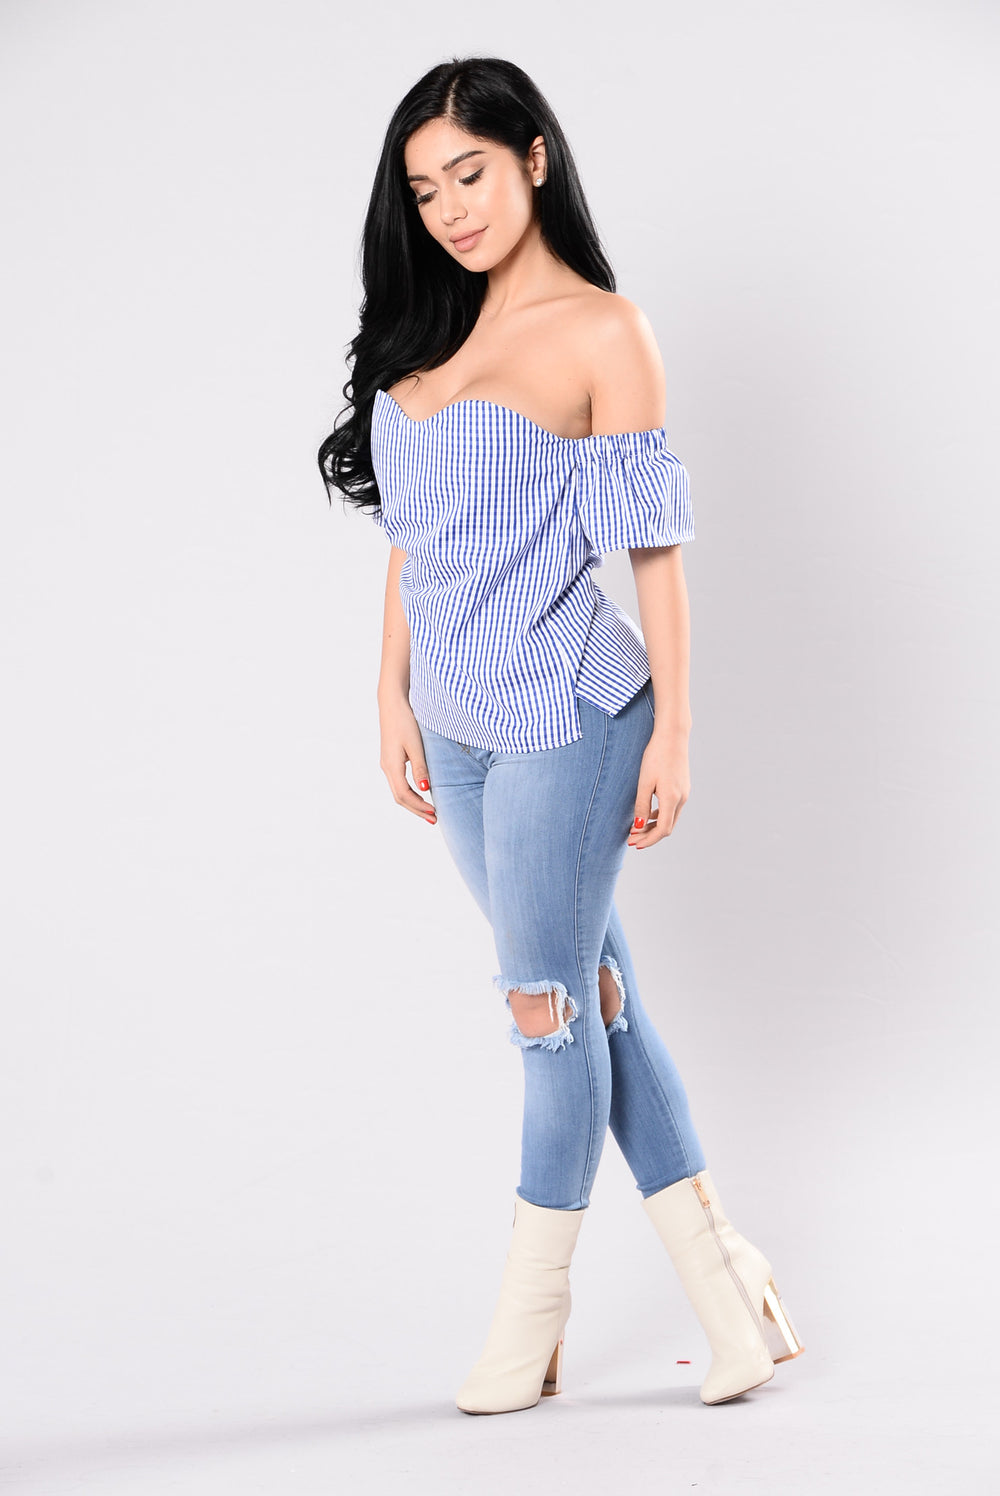 Sure Thing Top - Blue/White